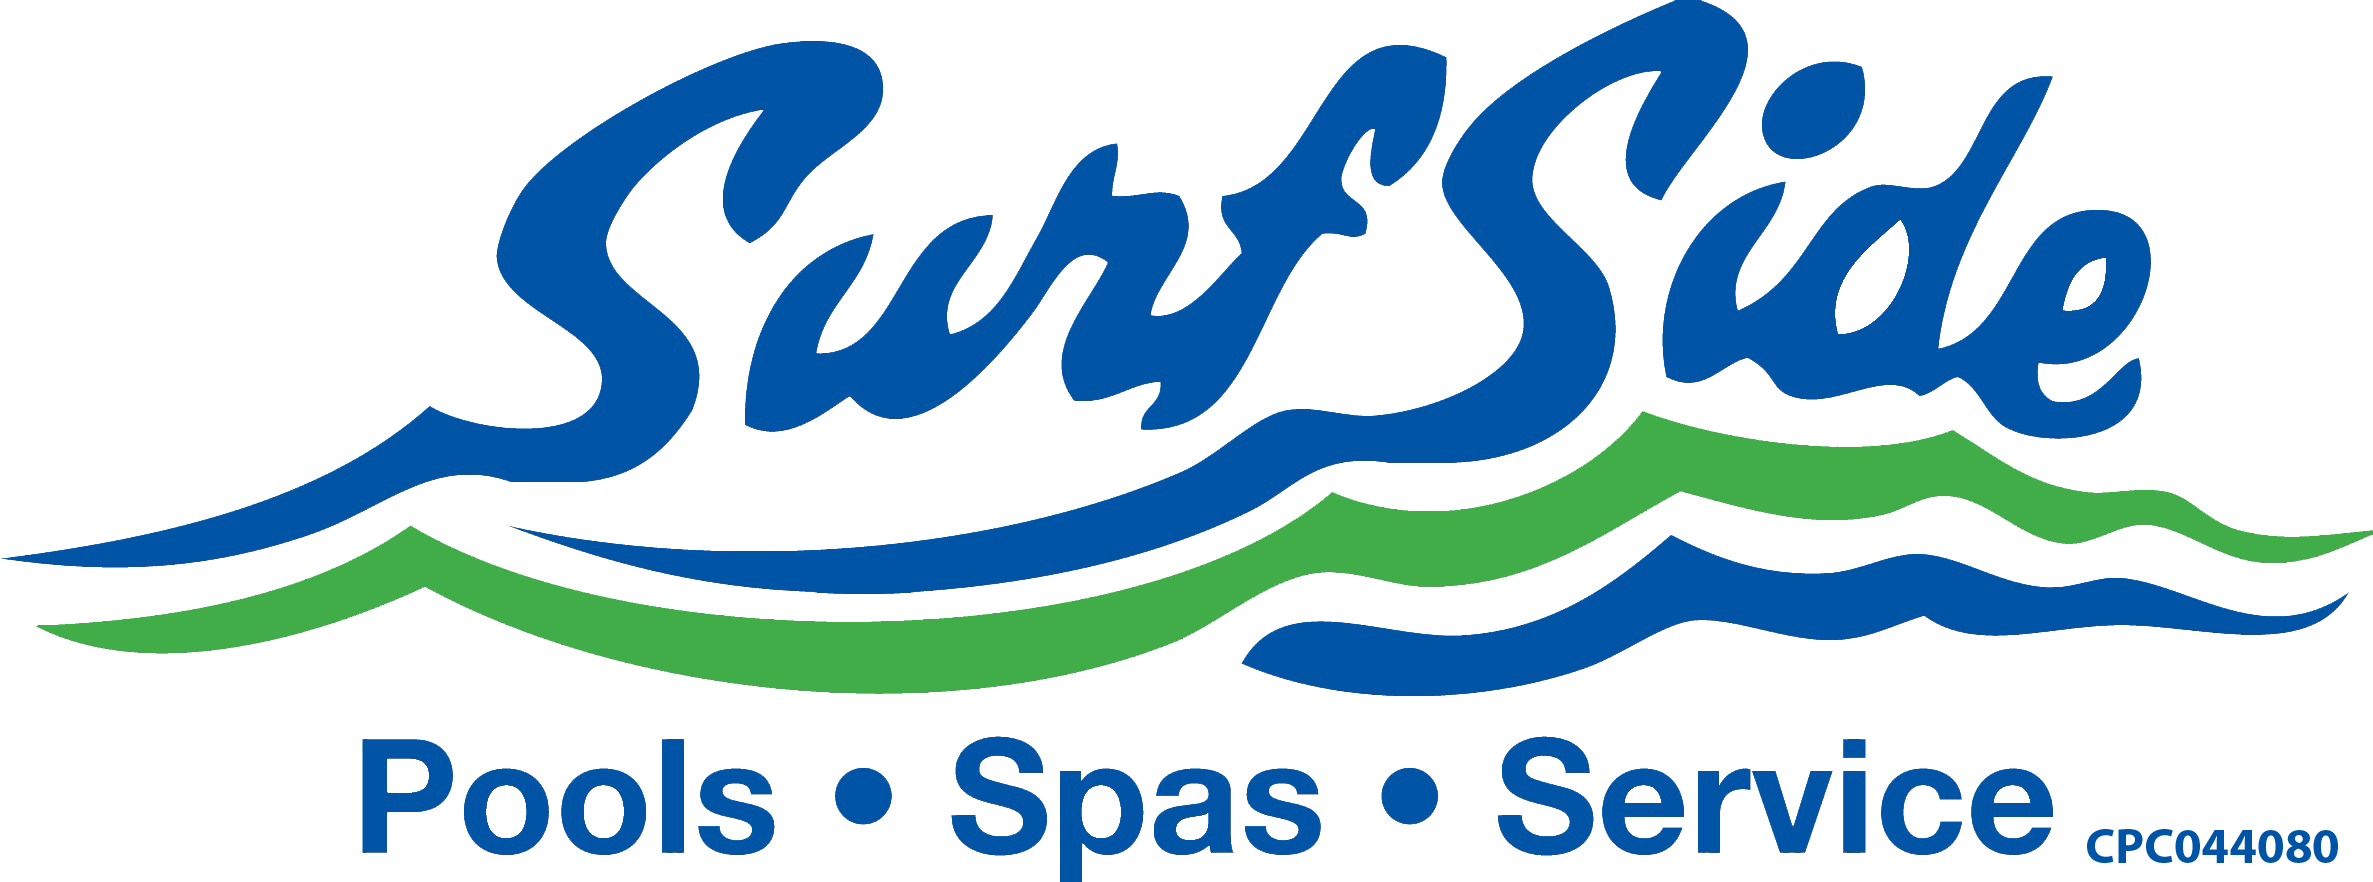 SurfSide Pools & Spas